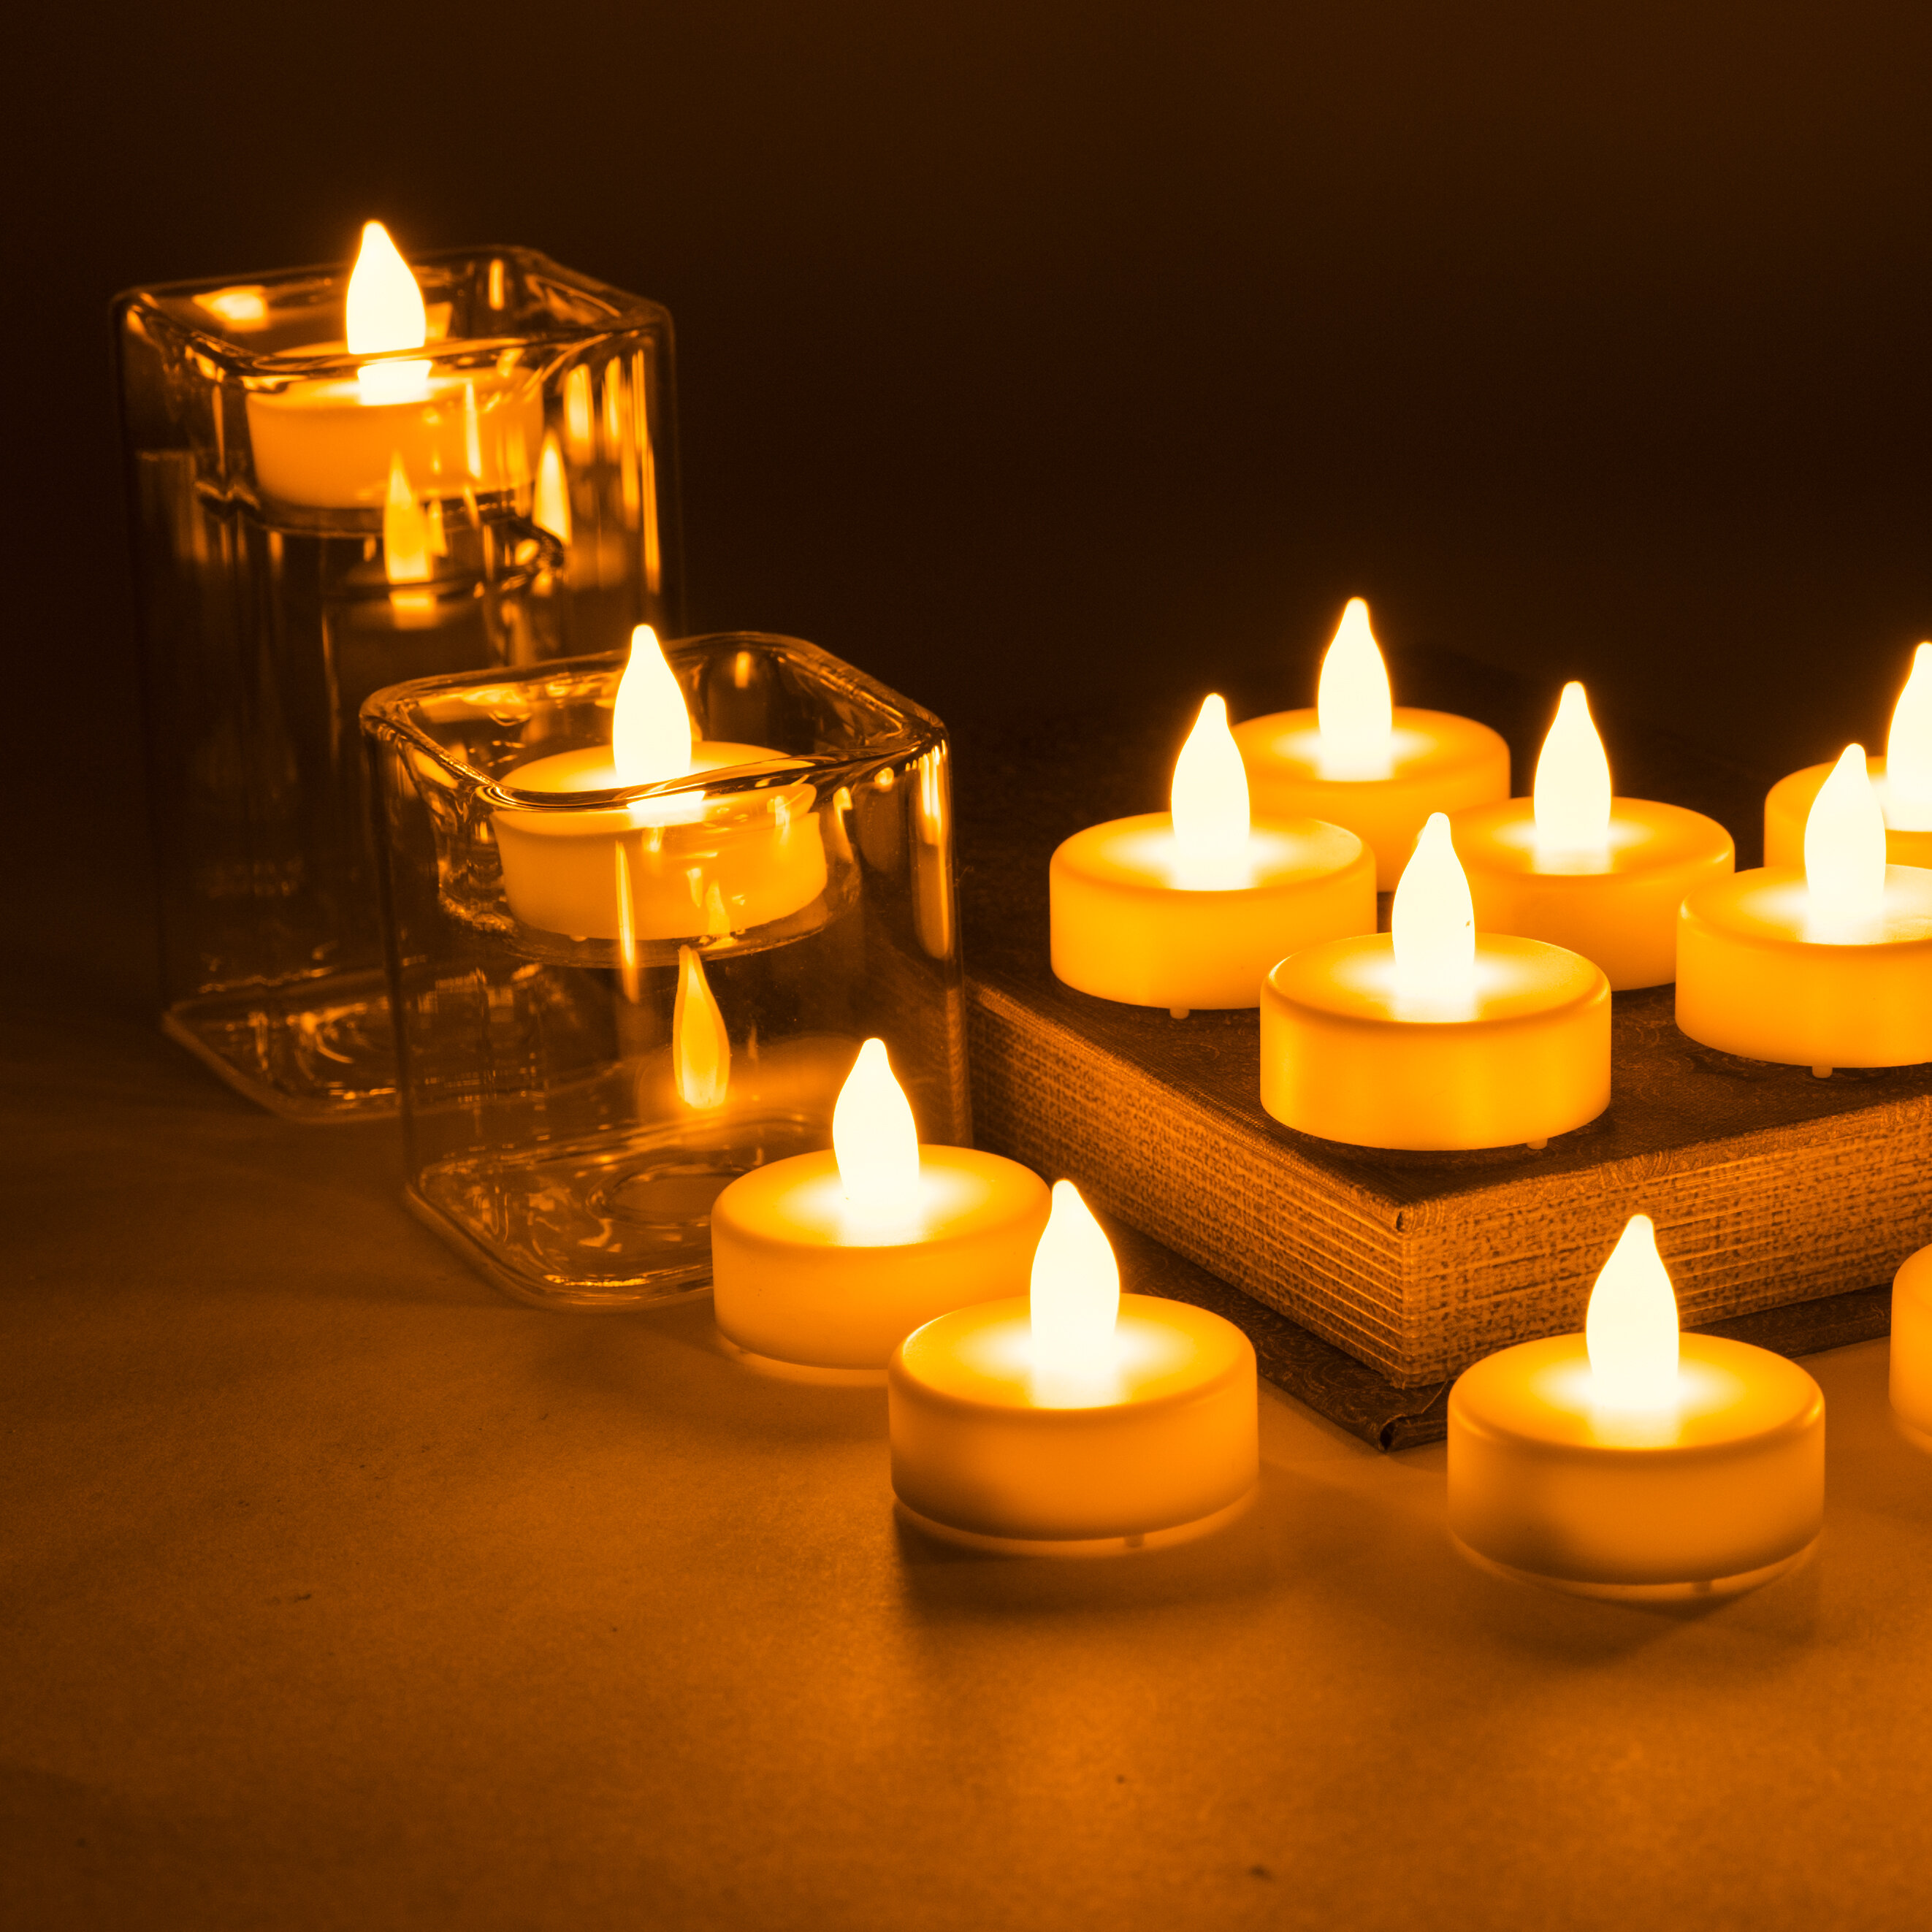 Wax Drip Effect Candle LED Light with Blow On blow Off Sensor Flickering Flame